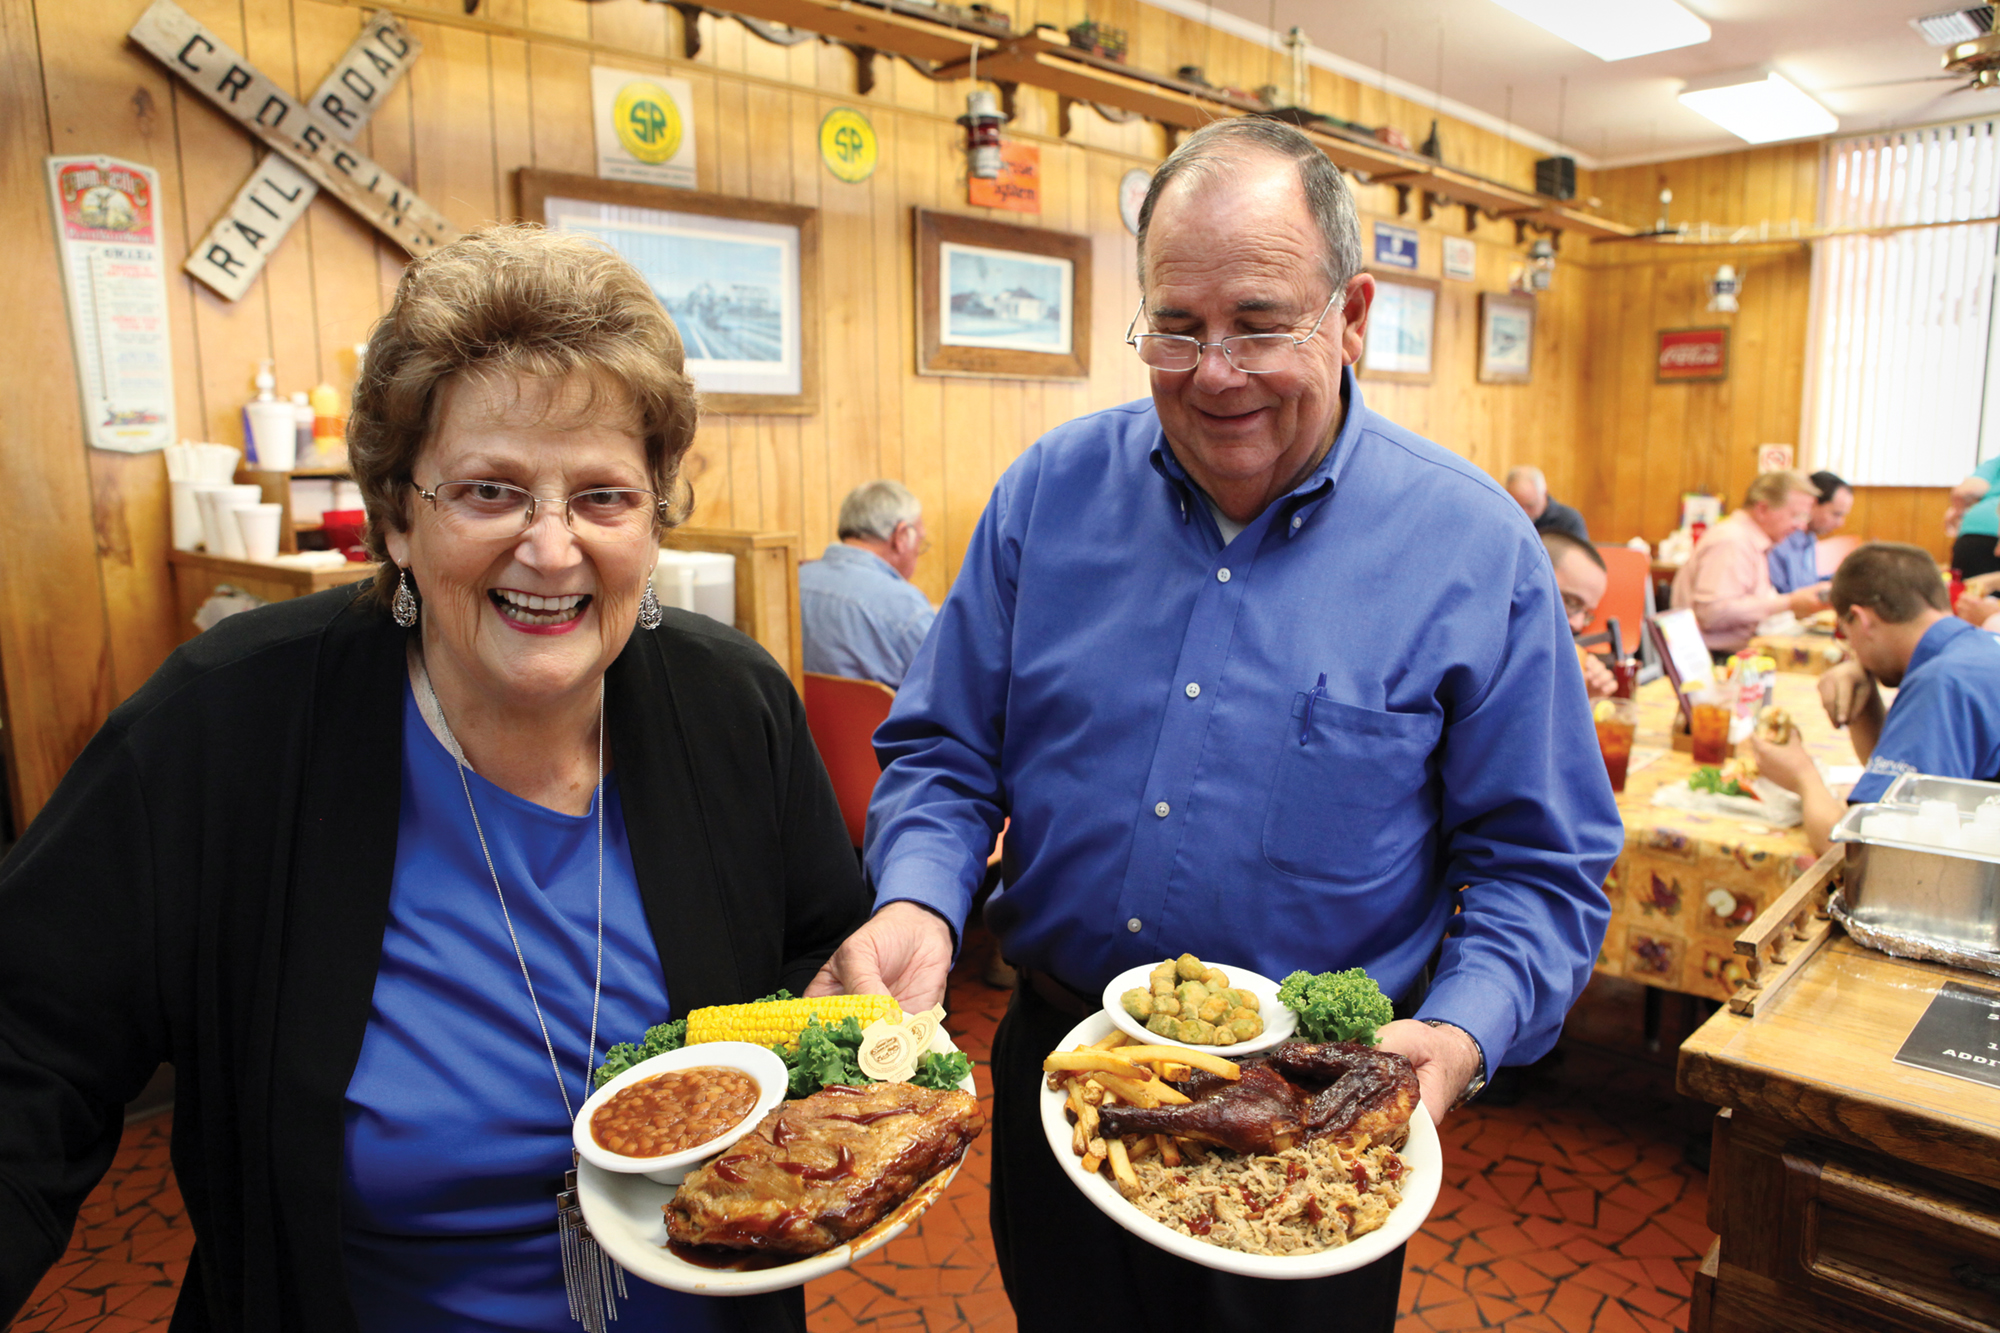 Gene and Linda Medlin moved to town in 1985 with their hearts set on opening their own barbecue restaurant.